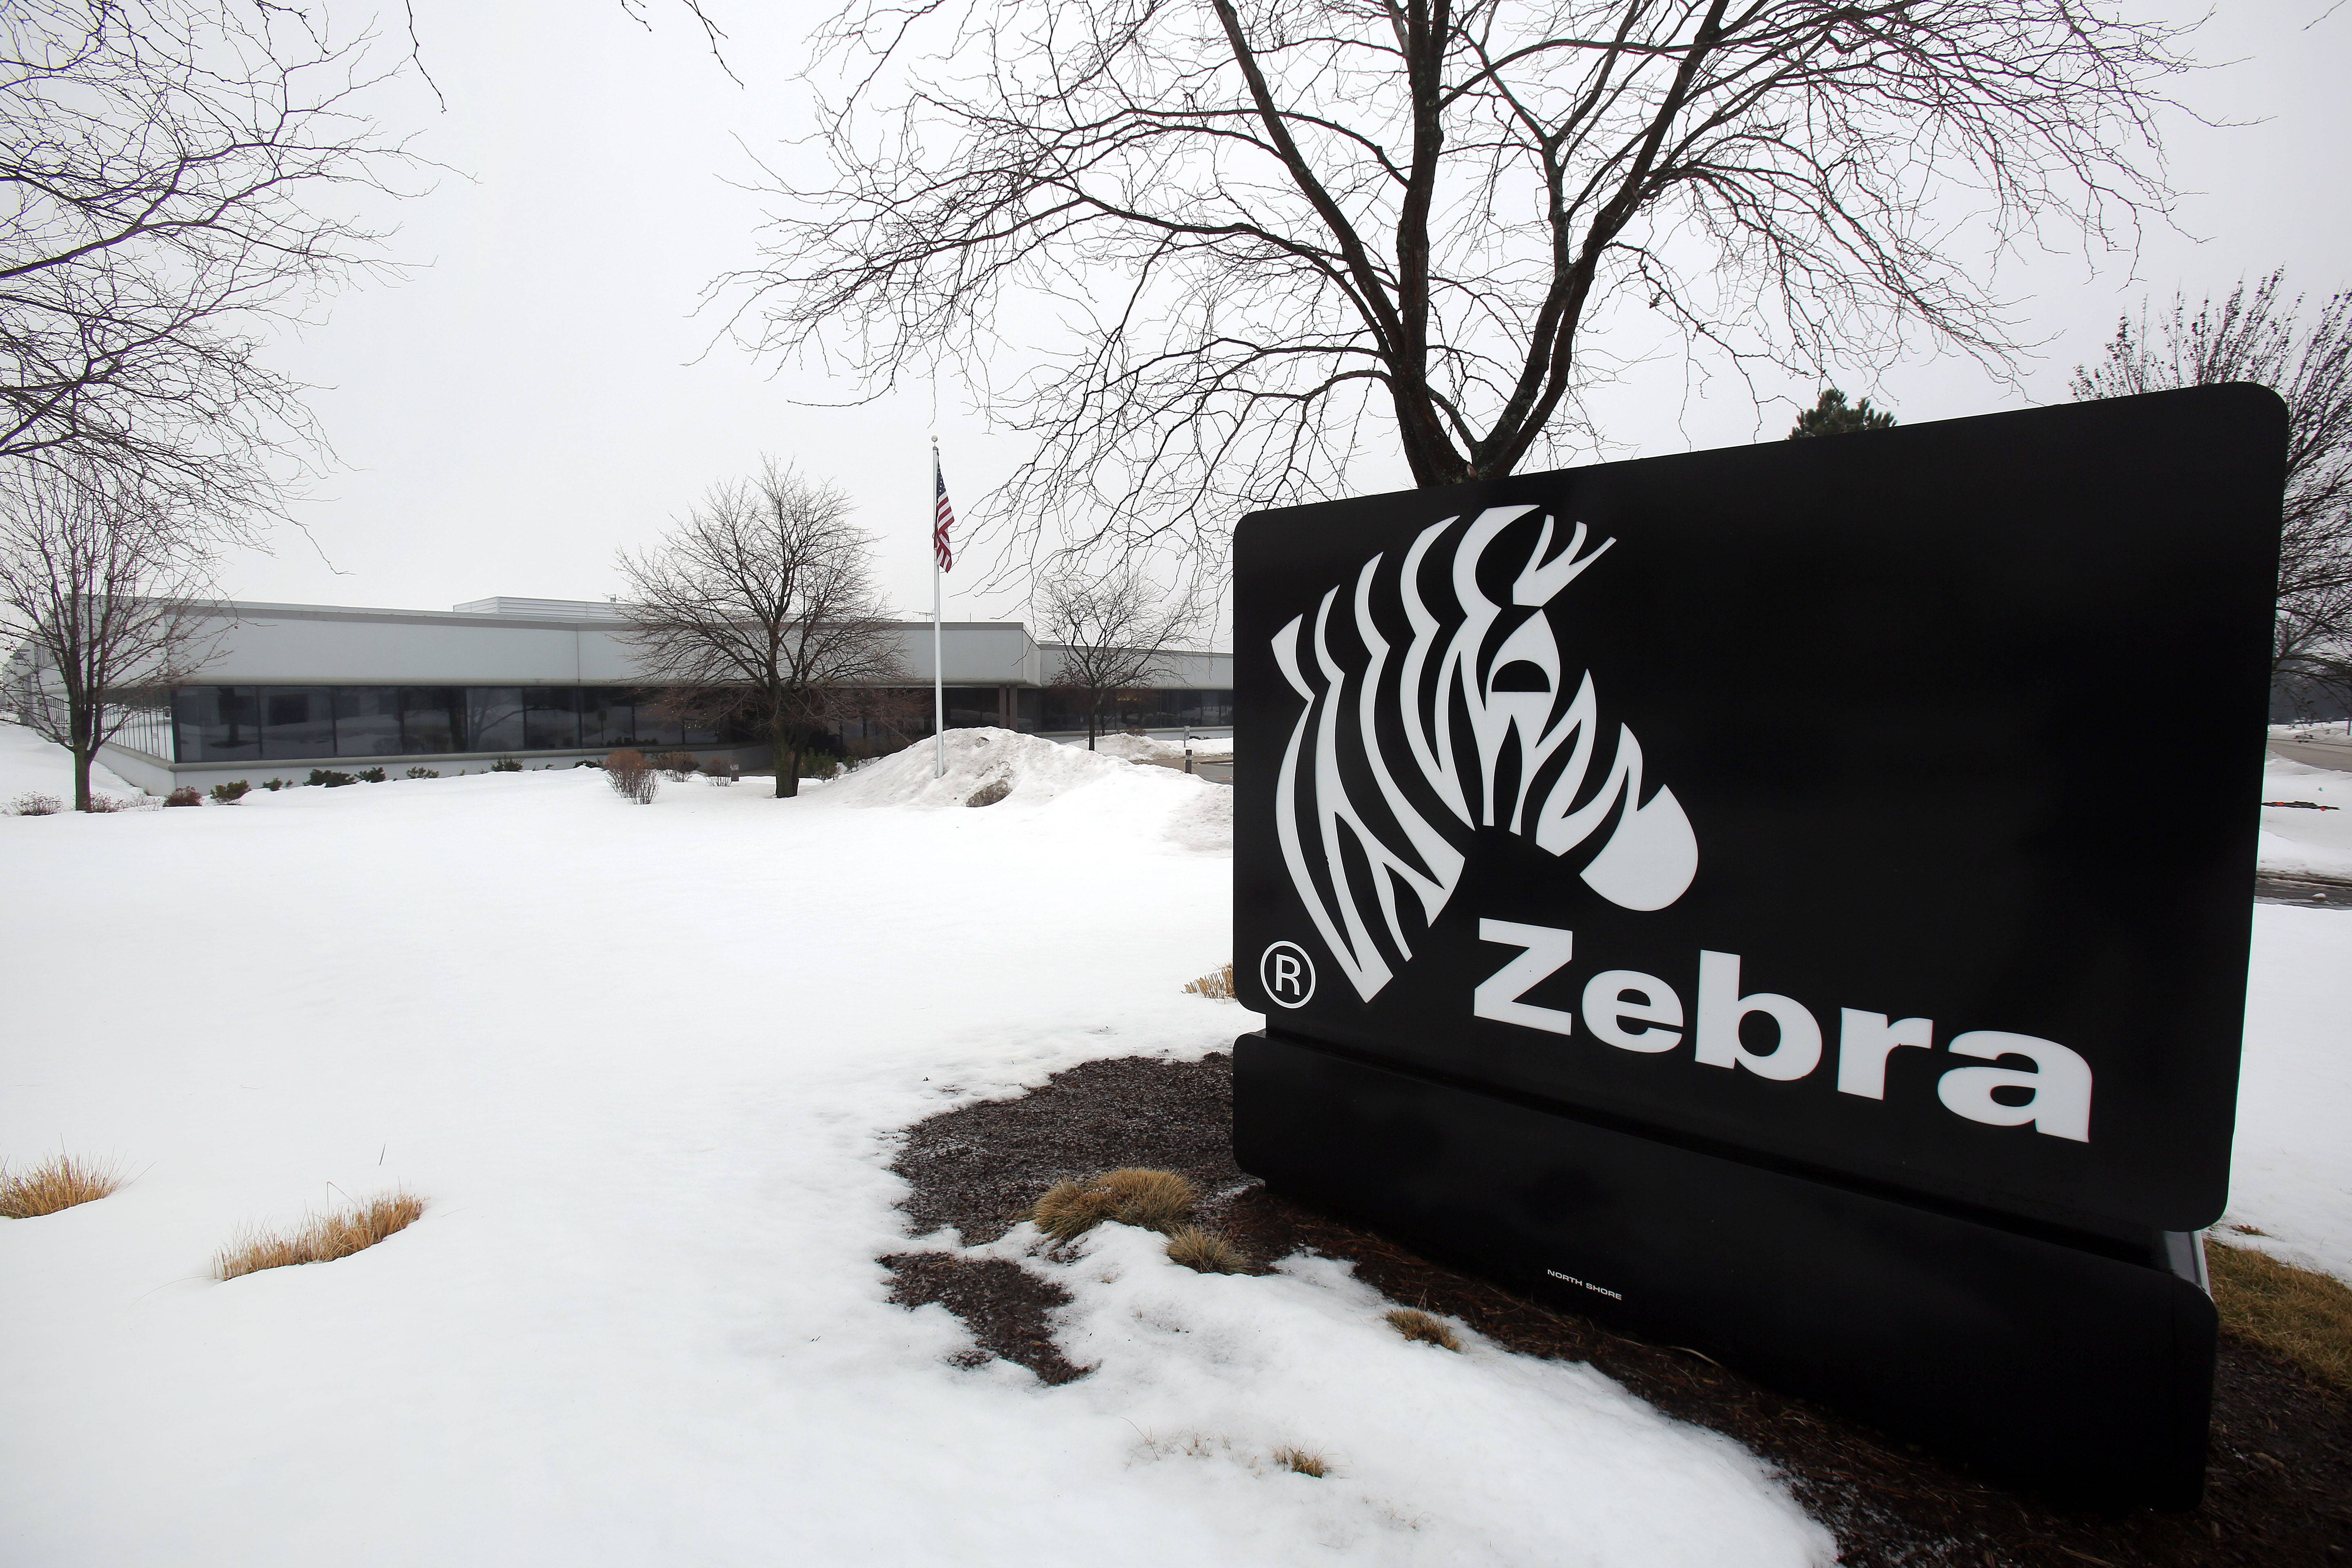 Motorola Solutions shrinks, while Zebra grows